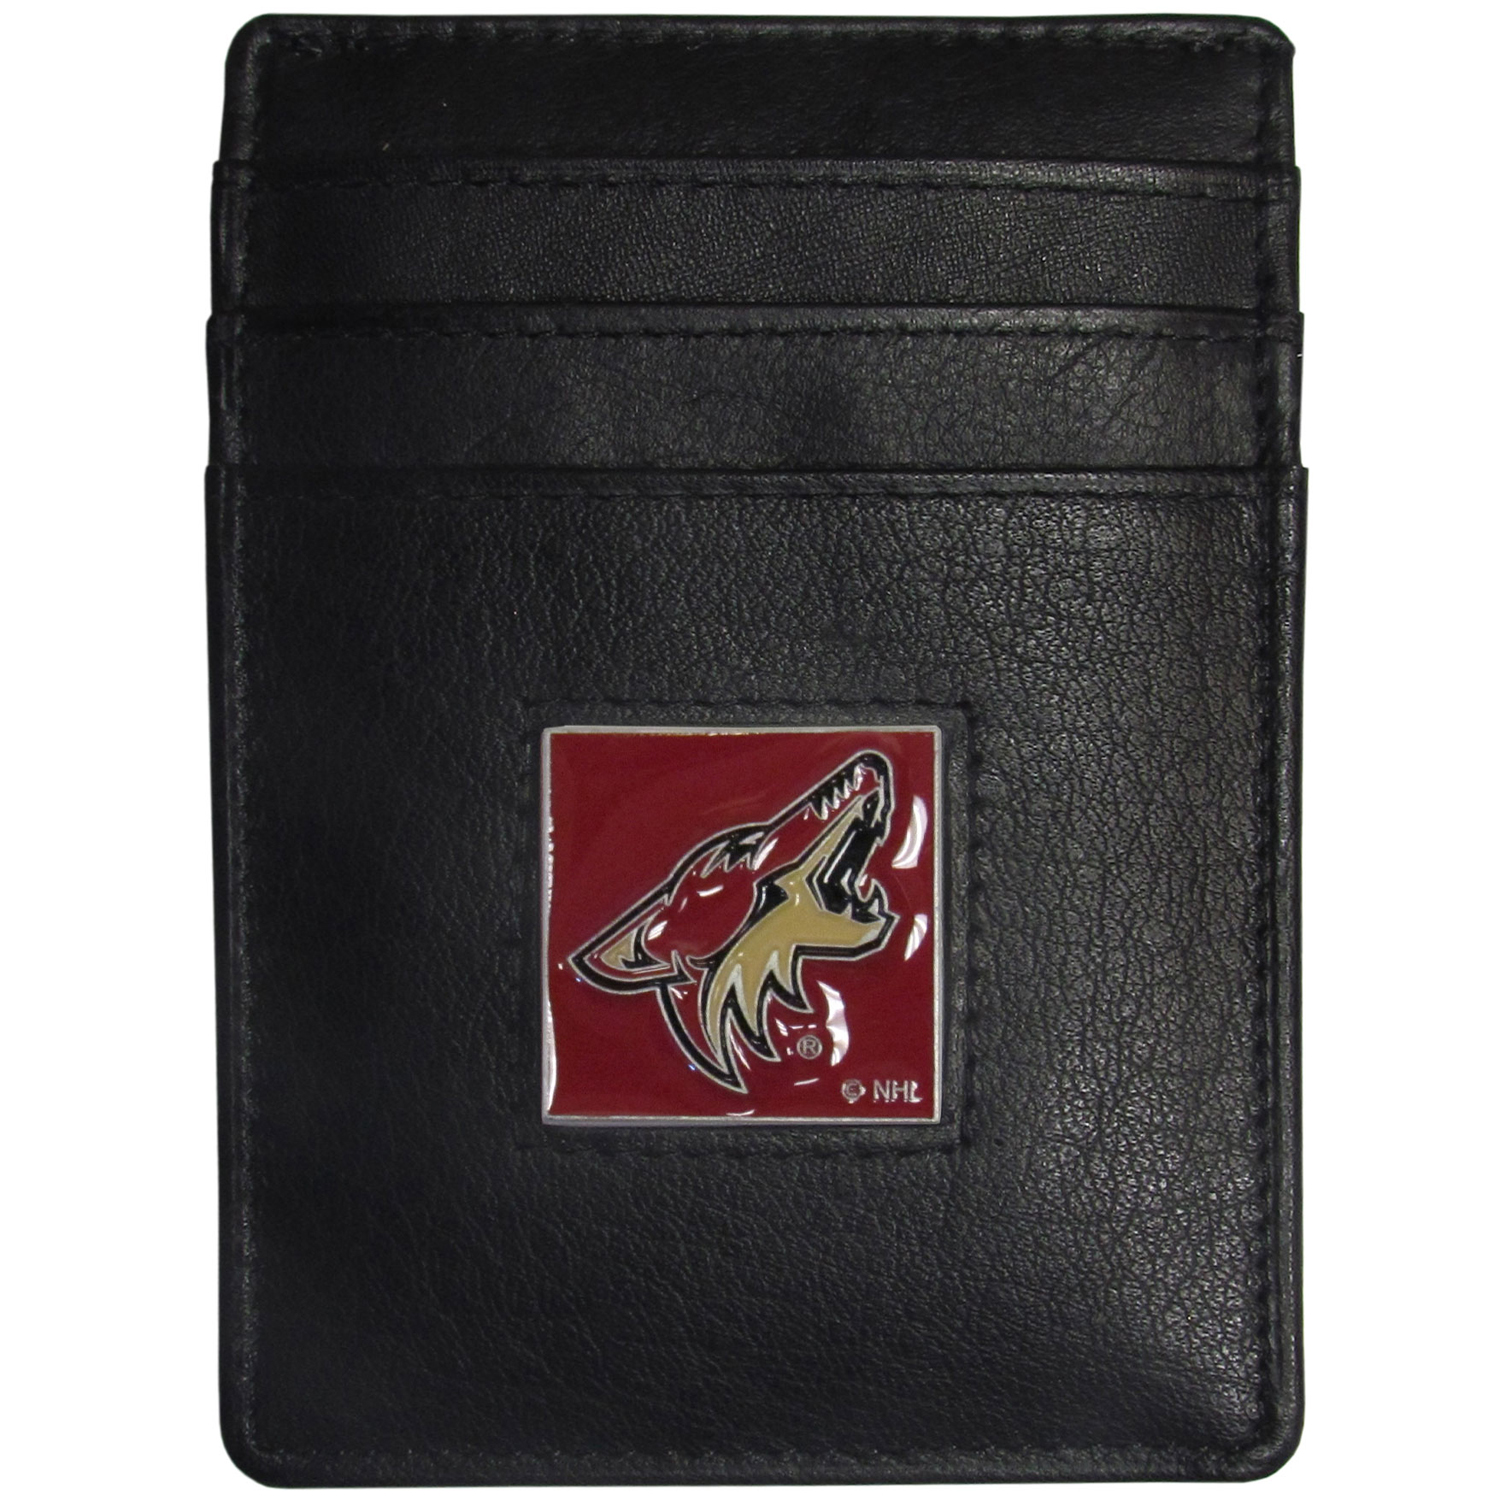 Arizona Coyotes® Leather Money Clip/Cardholder - Our officially licensed Money Clip/Card Holders won't make you choose between paper or plastic because they stow both easily. Features our sculpted and enameled Arizona Coyotes® emblem on the front of the wallet.